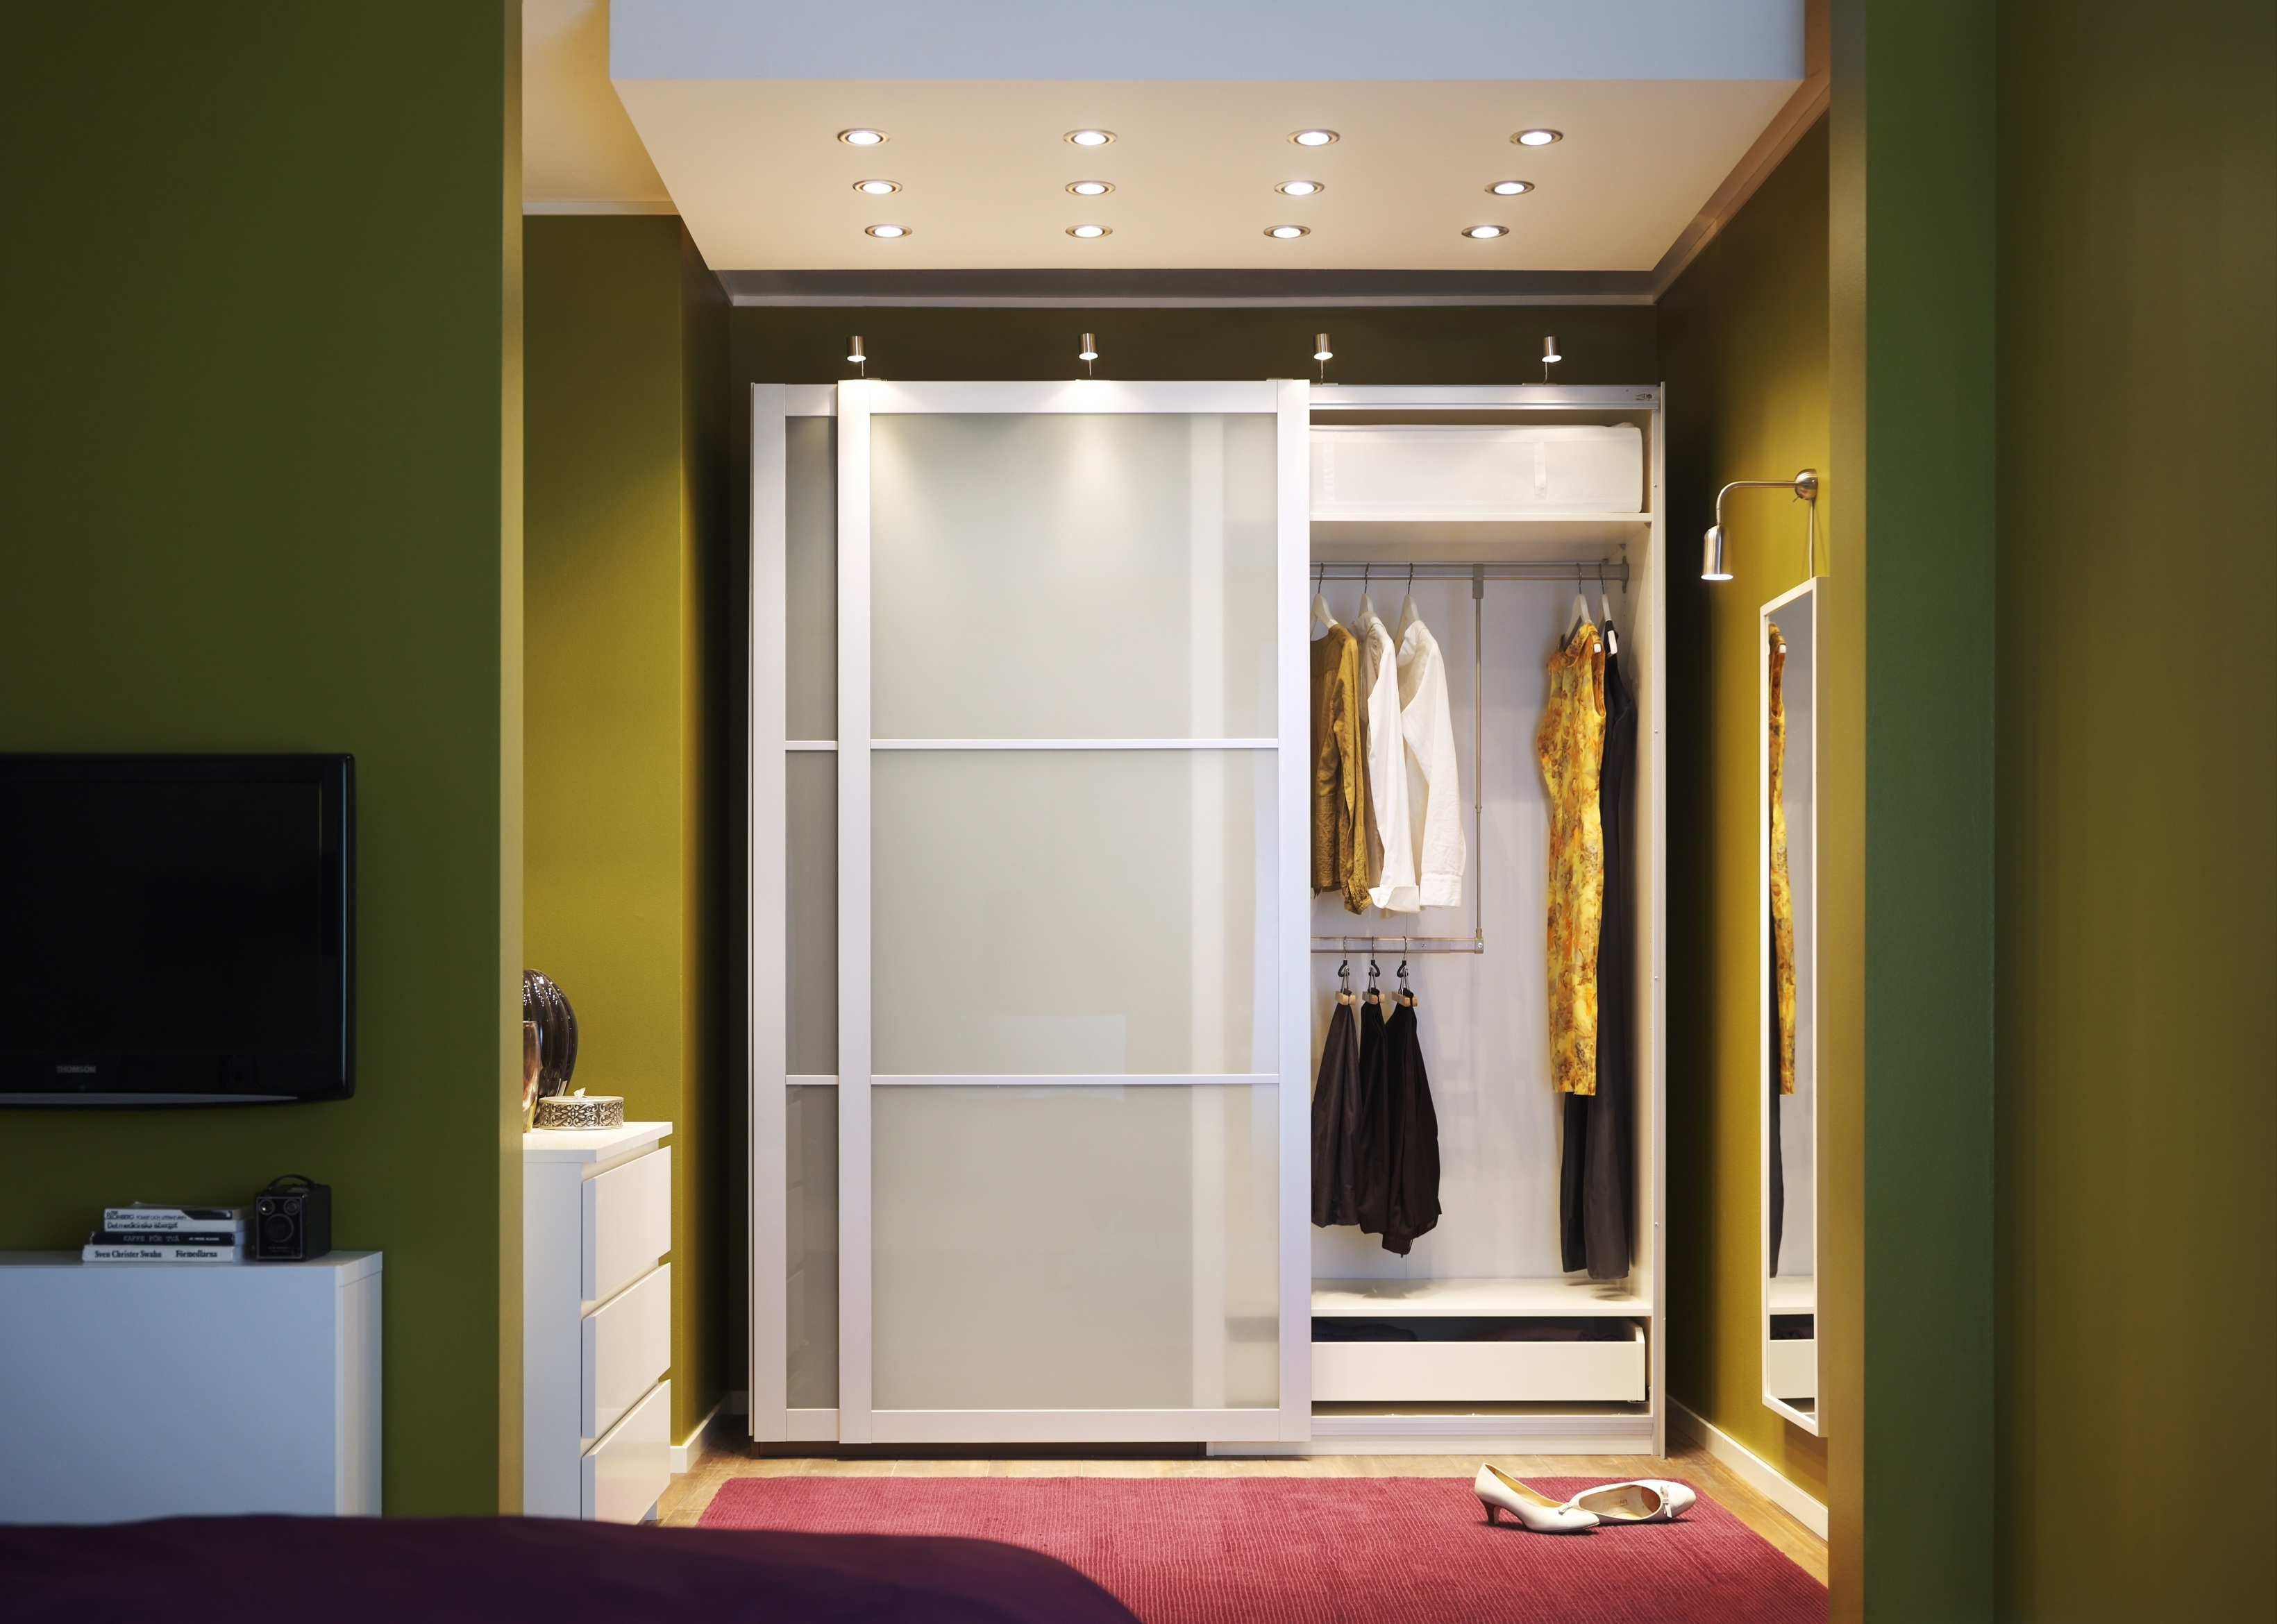 White Bedroom Sliding Closet Door Inside The With Modern TV And Cabinet